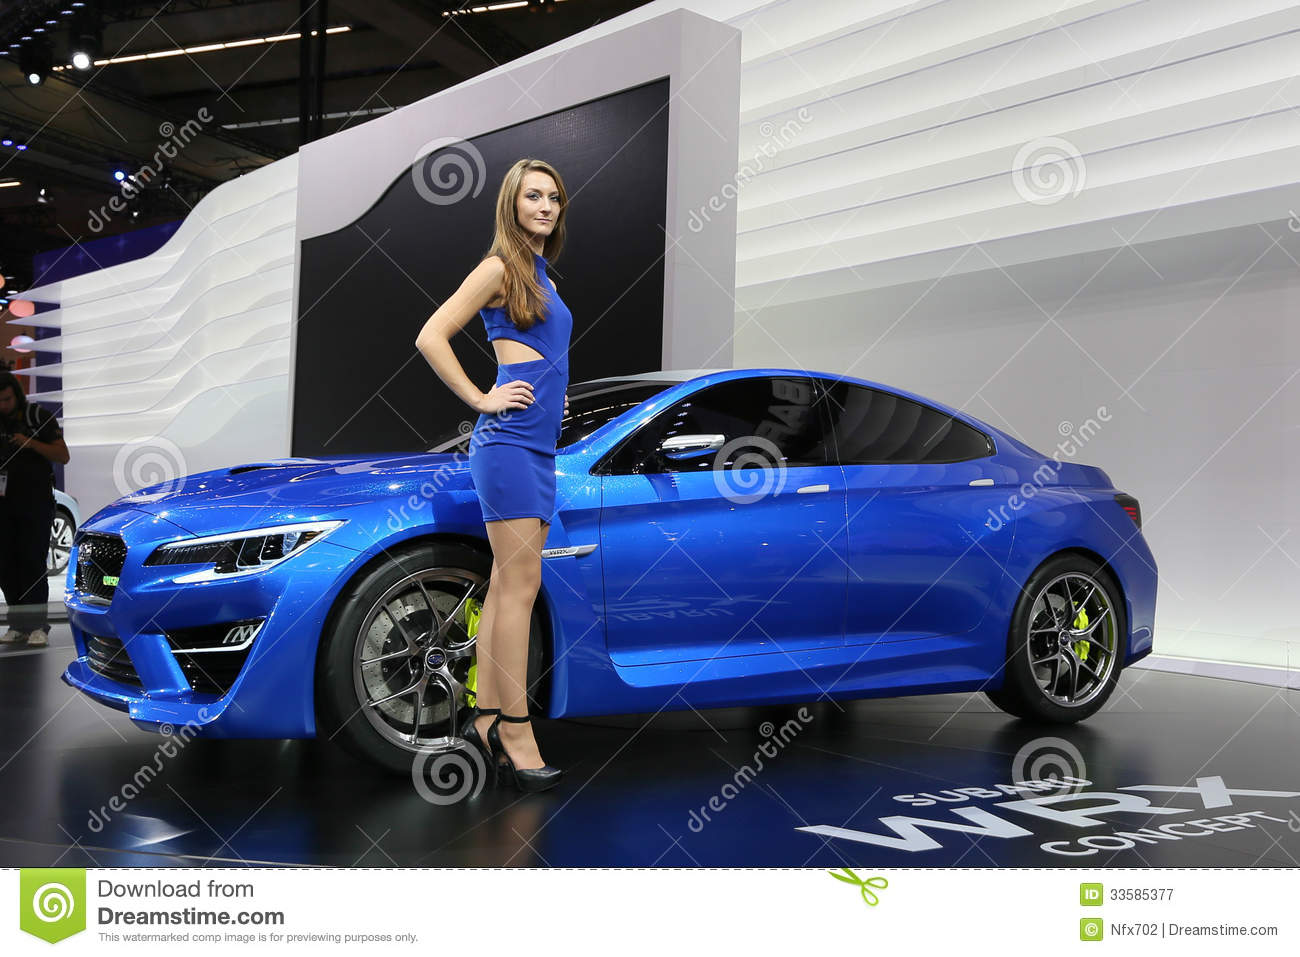 Subaru WRX Concept Shown At The Editorial Photography - Image ...